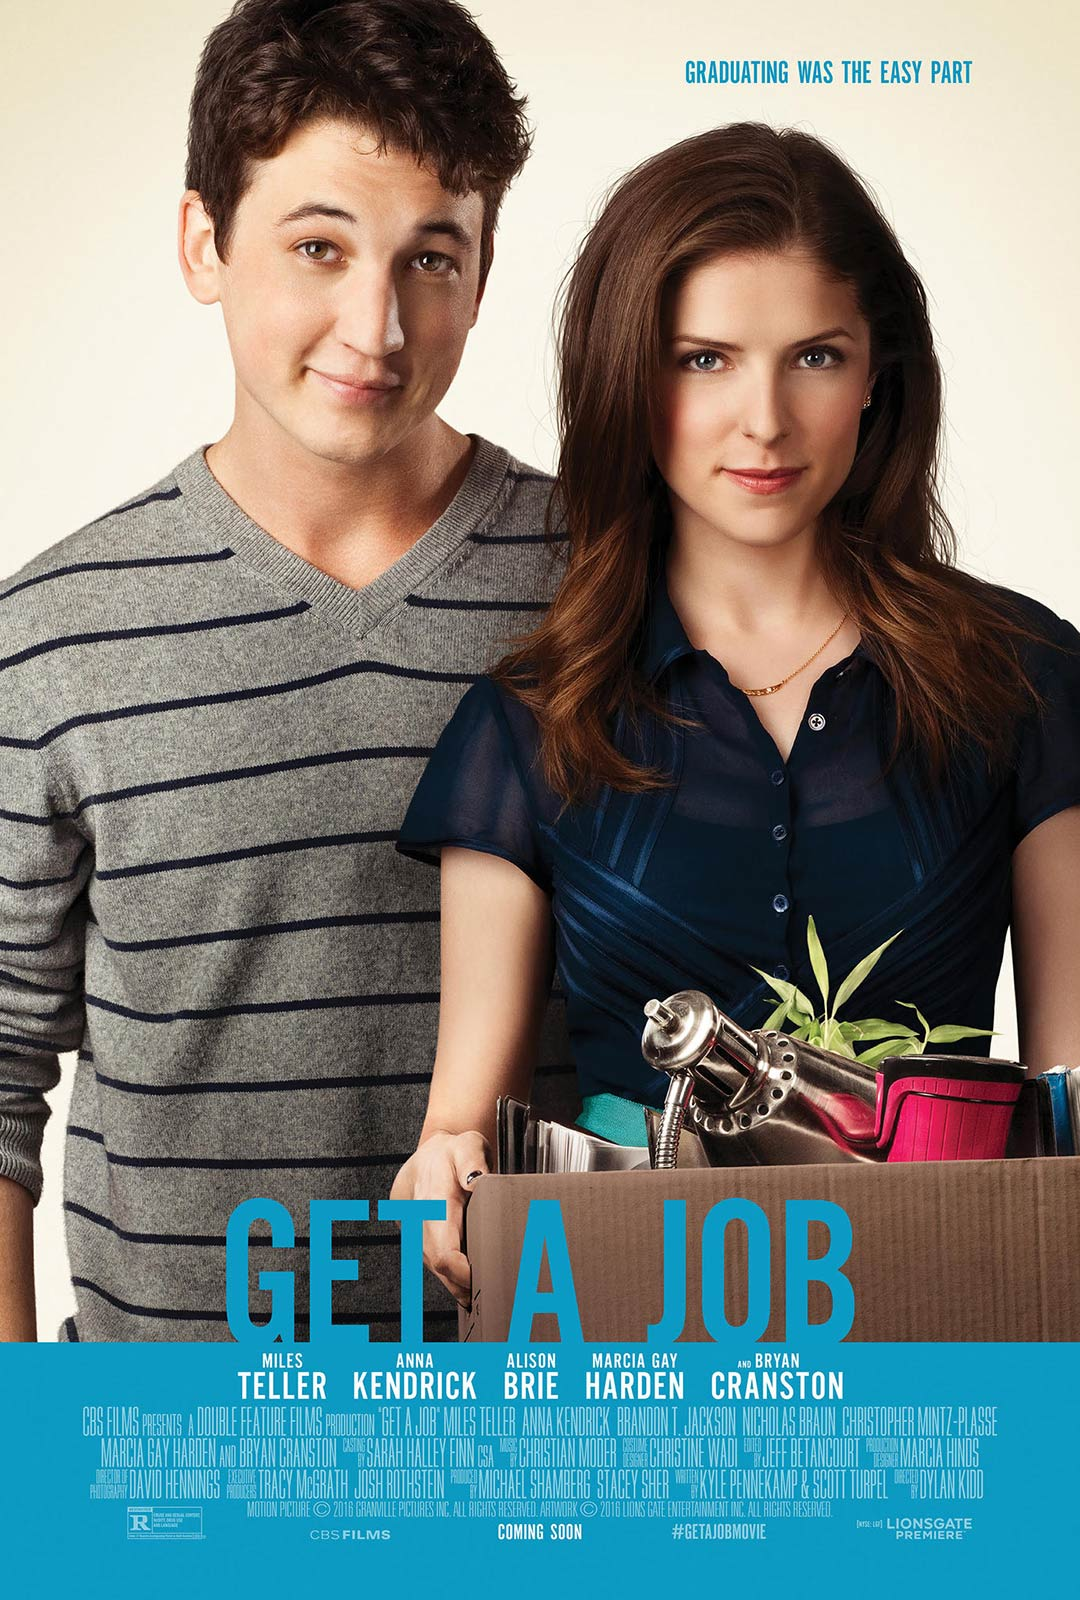 Get a Job 2016 Worldfree4u – Full Movie Dual Audio HD 720P English ESubs